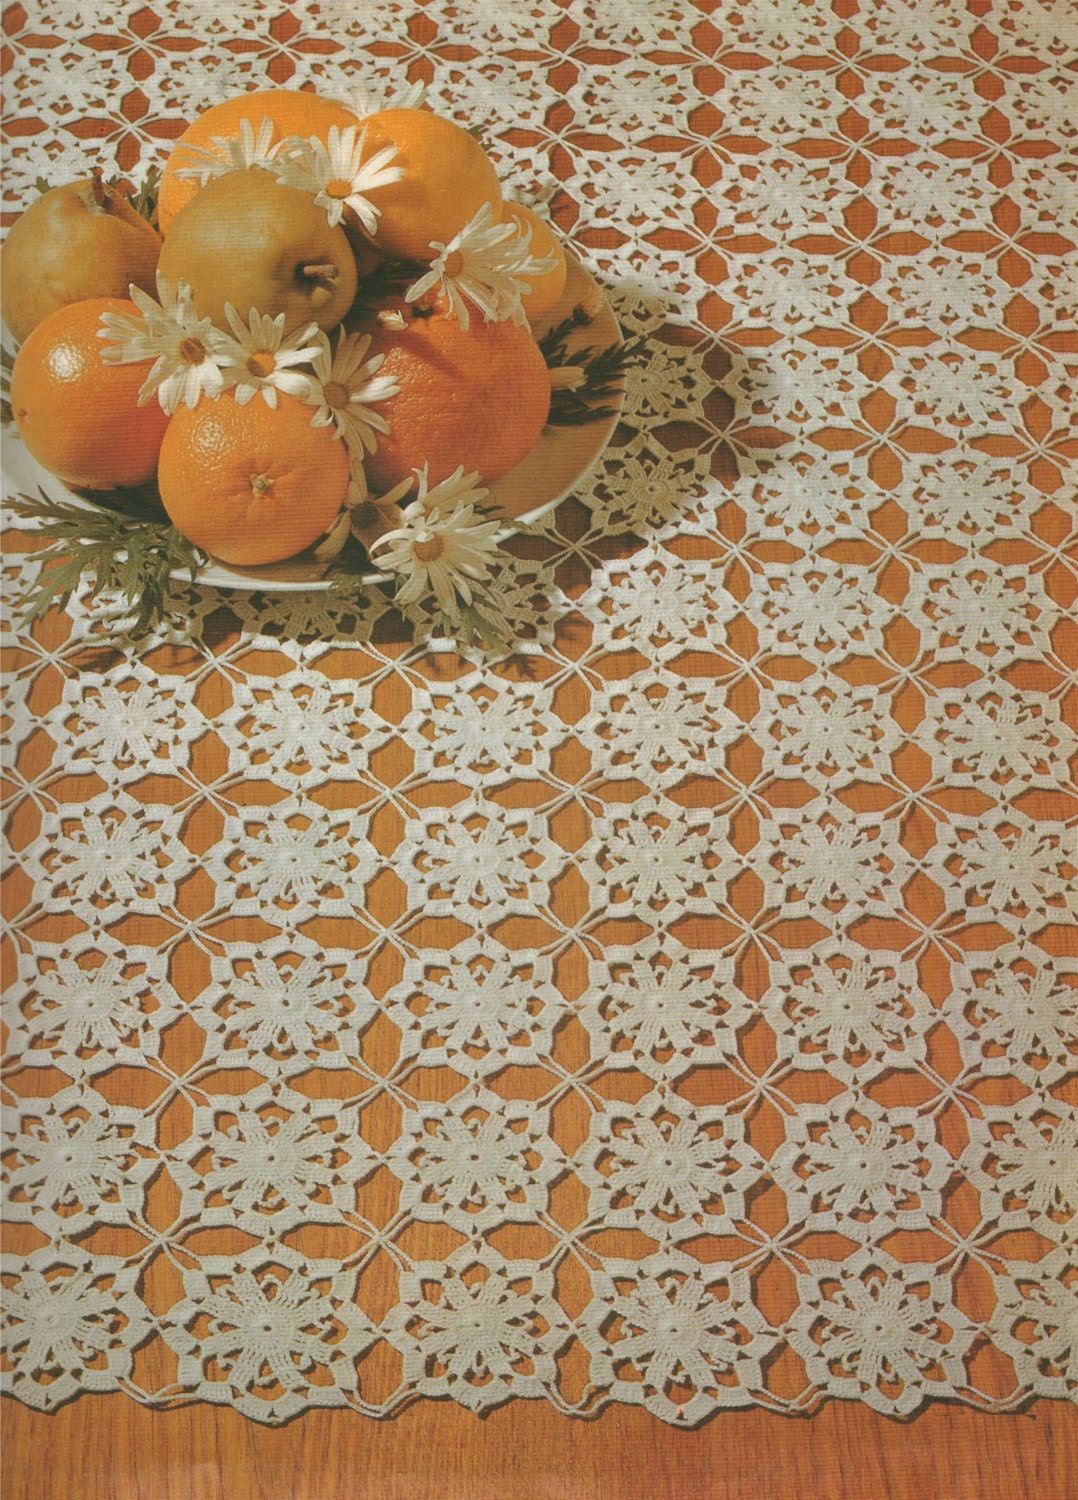 Square Doily Crochet Pattern Pdf Doily Mat Small Tablecloth Table